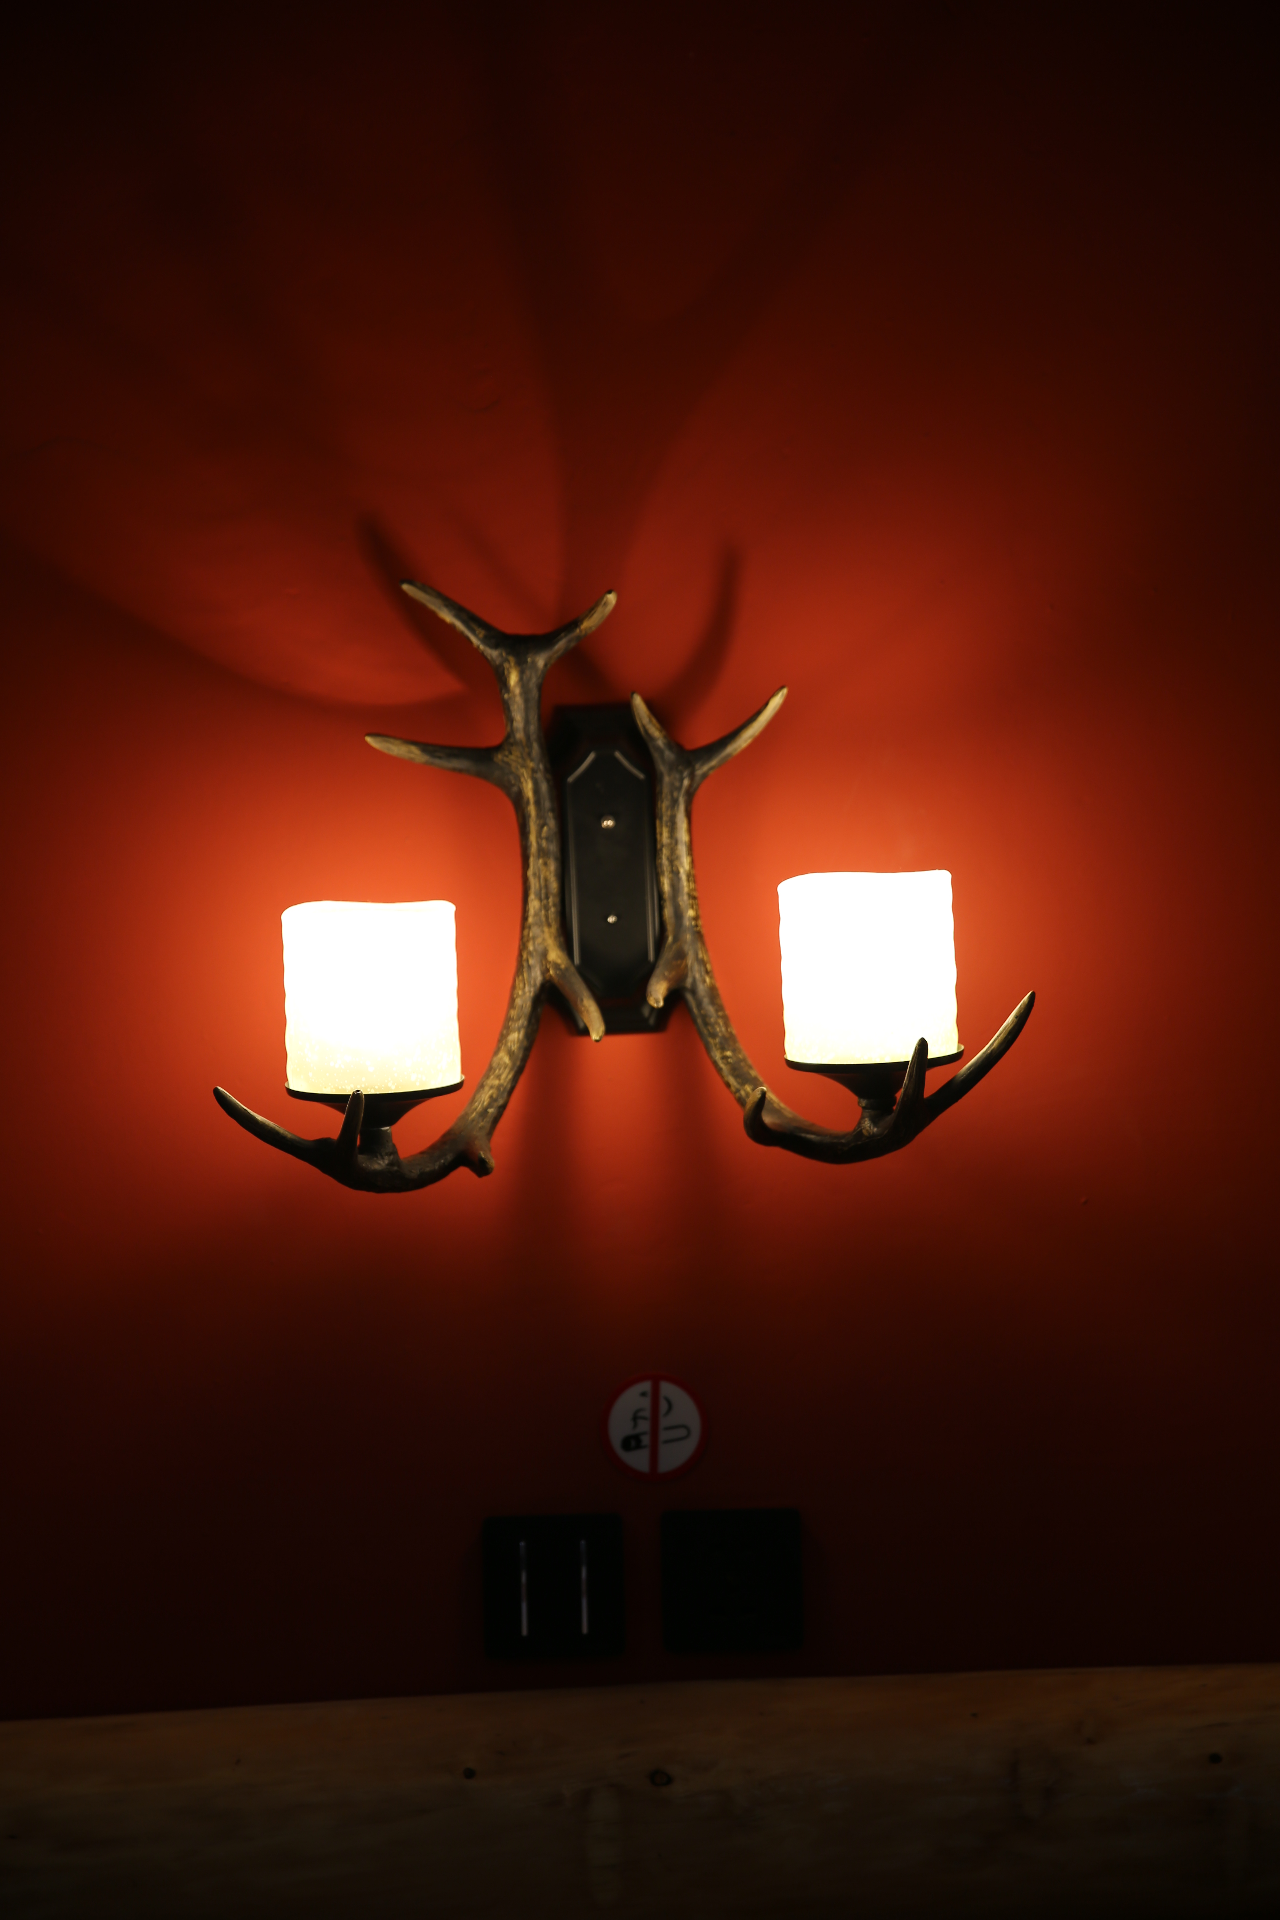 lamps in the room